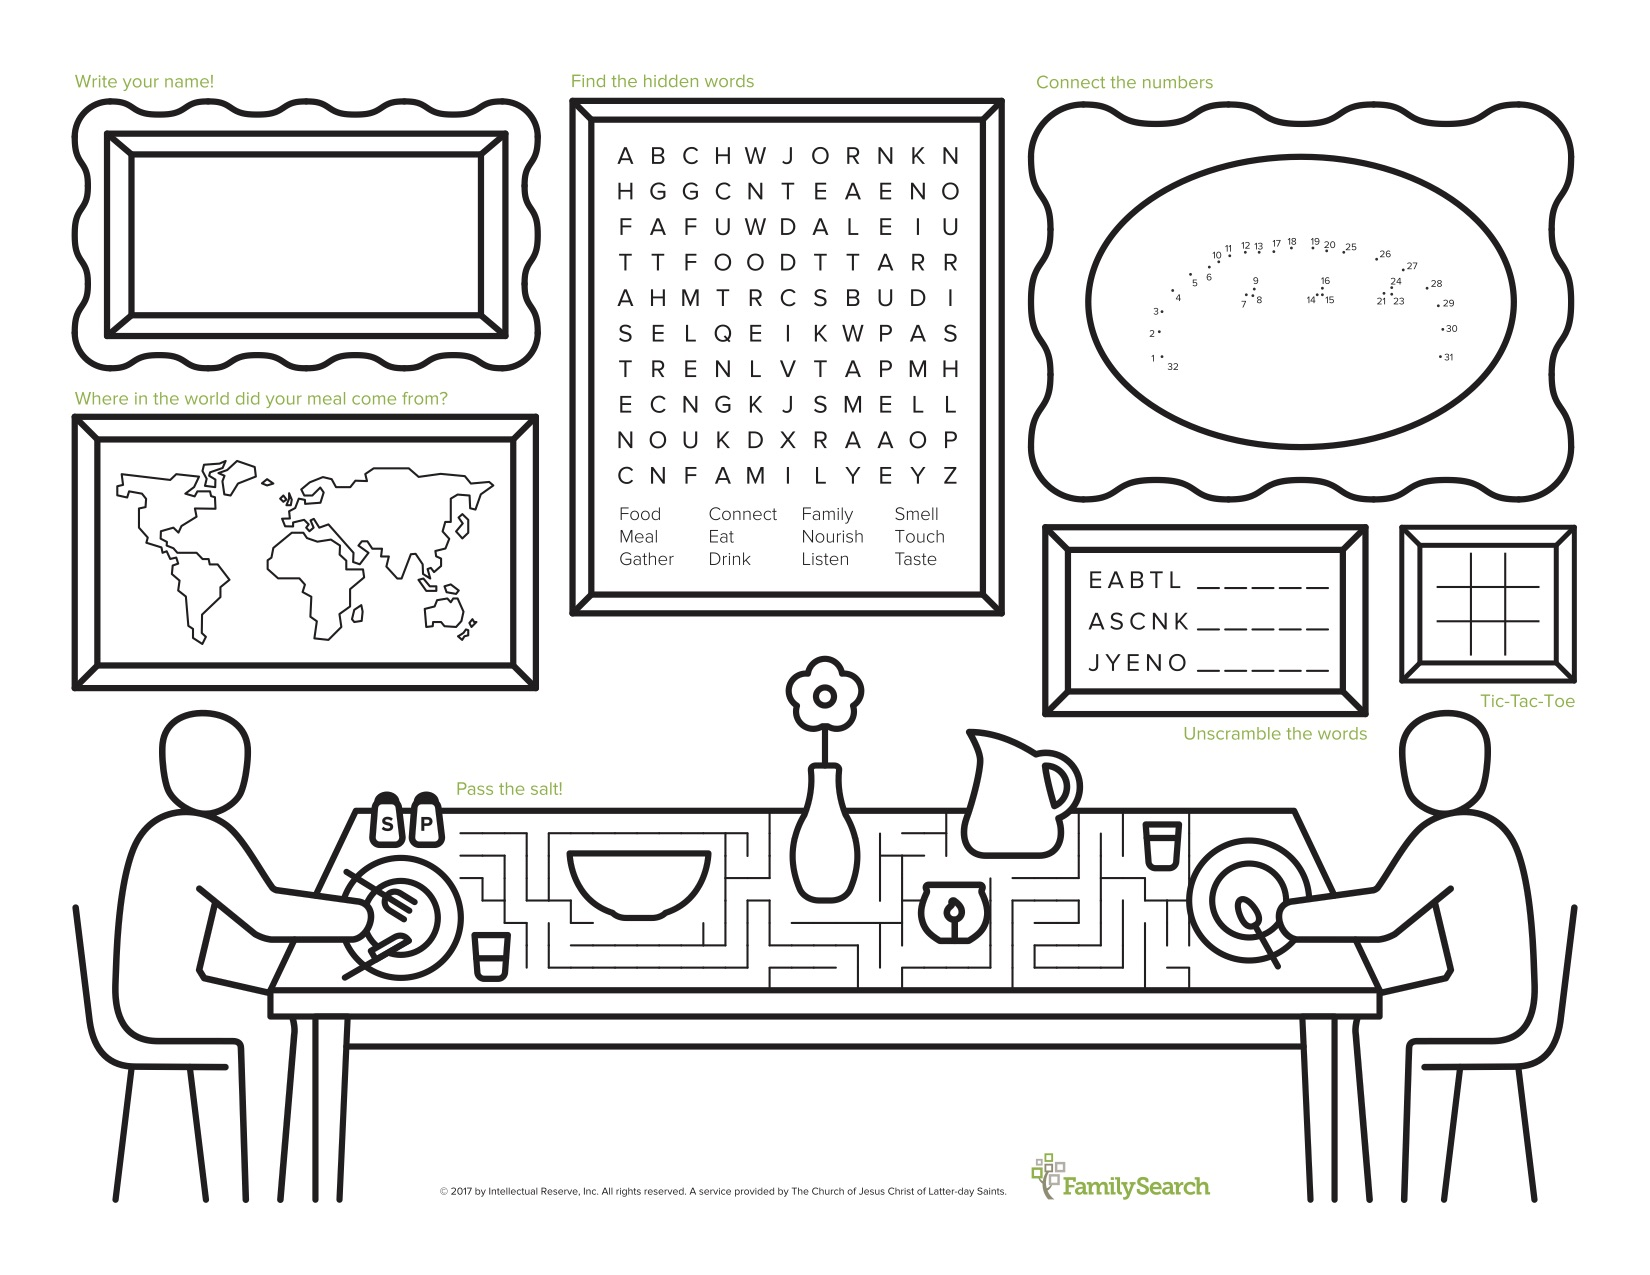 Print this placemat for a fun family experience.